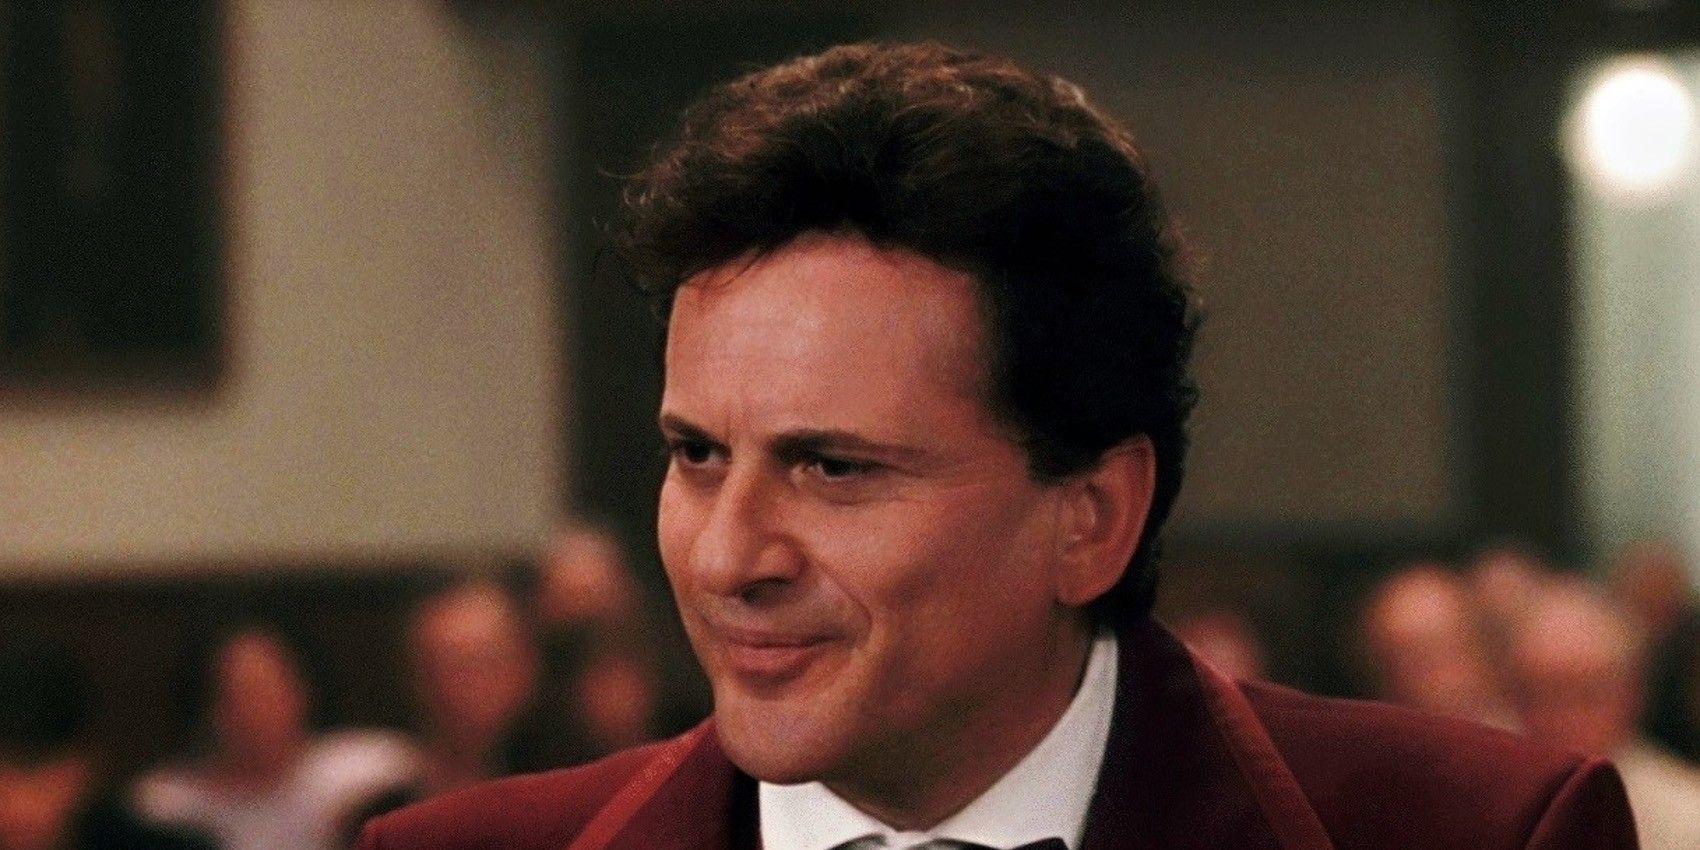 My Cousin Vinny Director Responds To Rudy Giuliani S Mention Of The Movie Two new yorkers accused of murder in rural alabama while on their way back to college call in the help of one of their cousins, a loudmouth lawyer with no the bad news is that vinny is an inexperienced lawyer who has not been at a trial. my cousin vinny director responds to